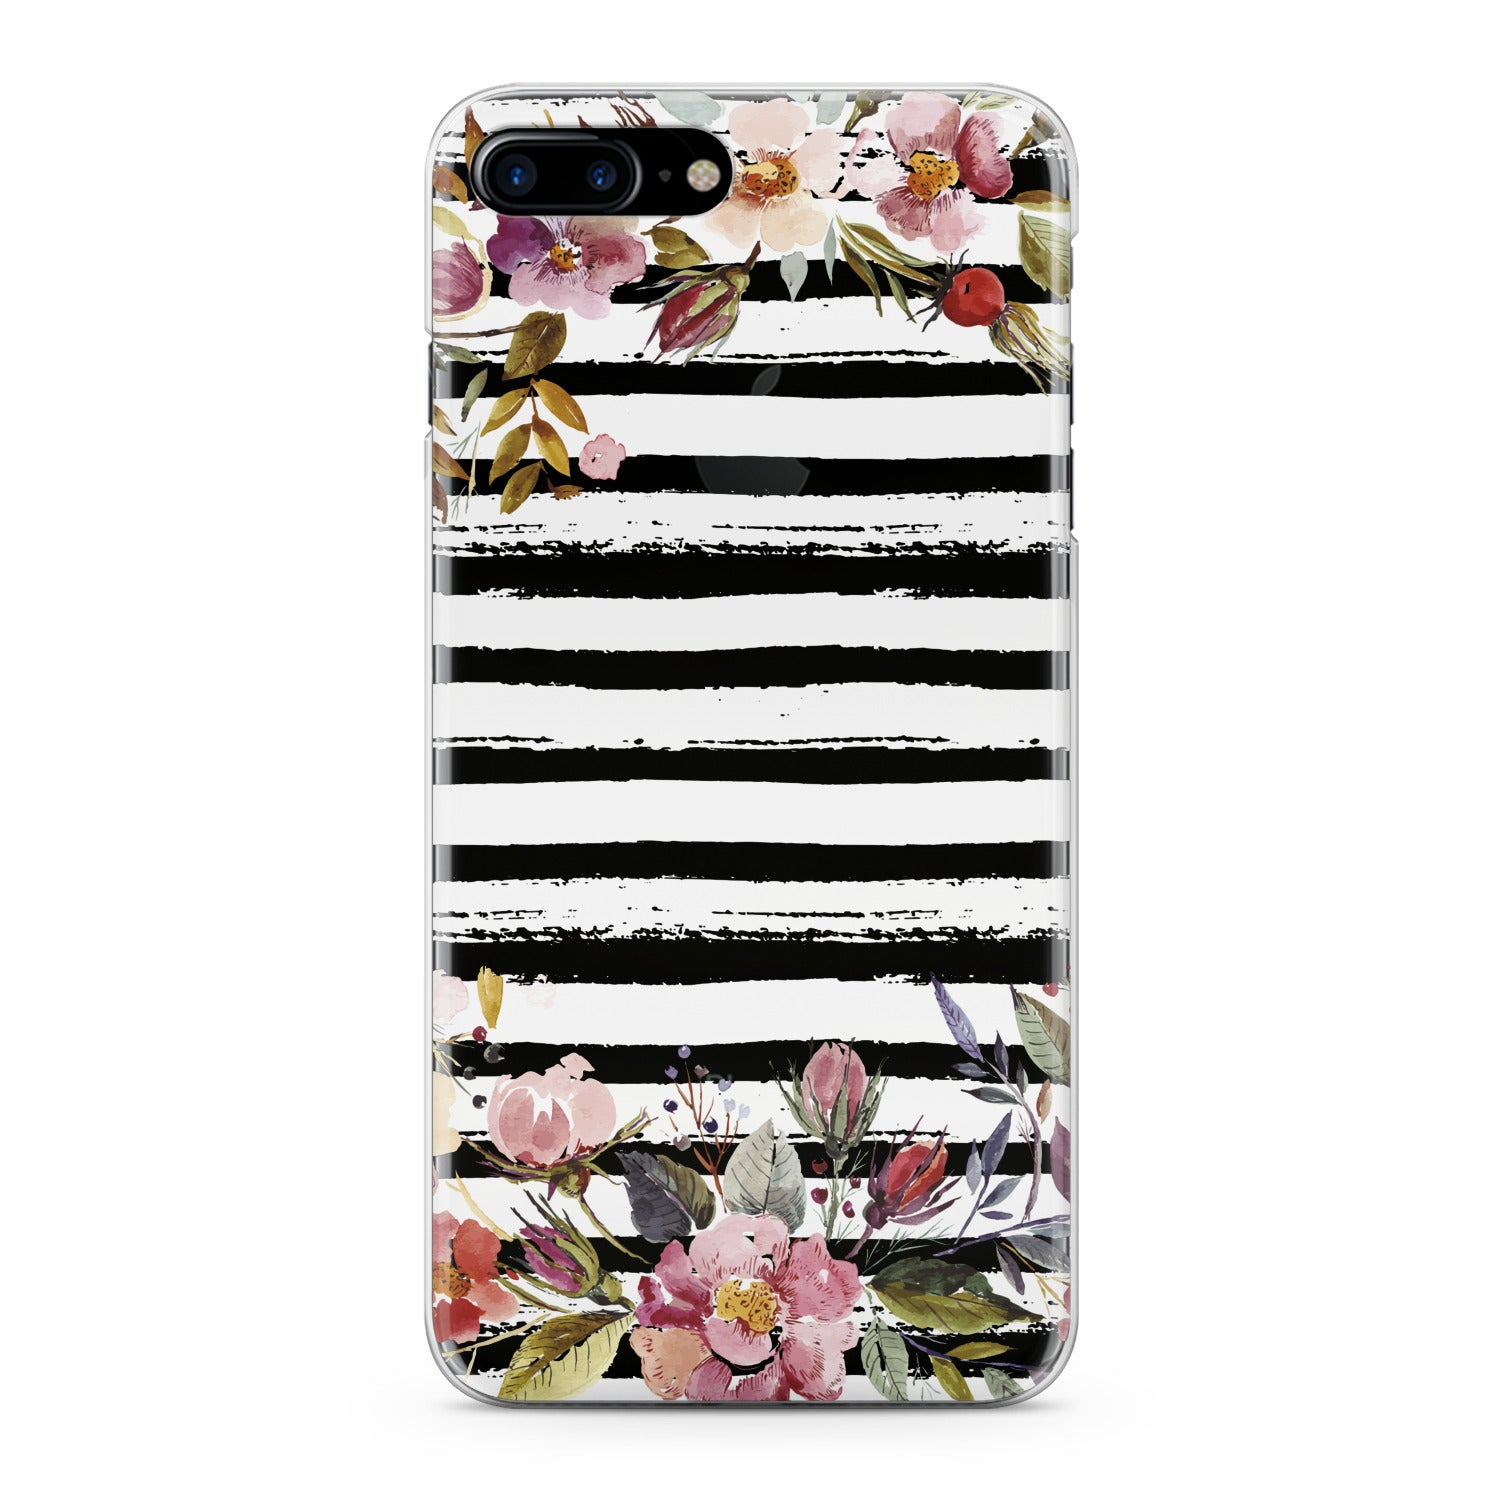 Lex Altern Watercolor Spring Flowers Phone Case for your iPhone & Android phone.